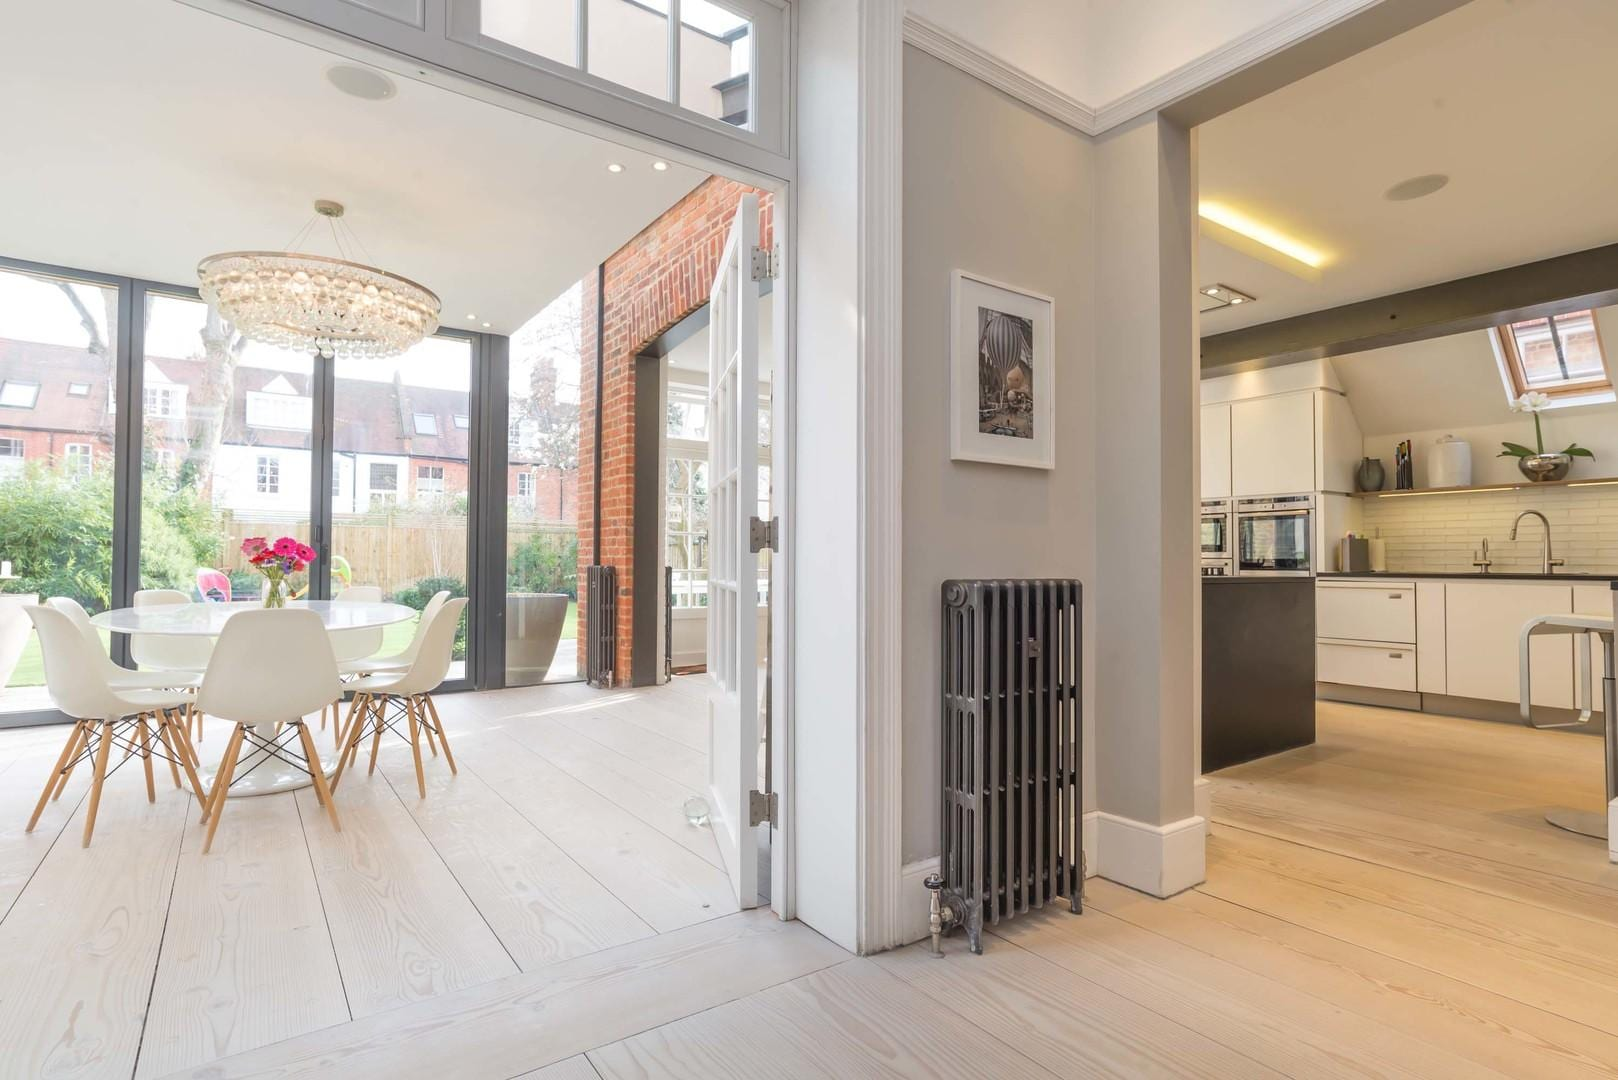 Property Image 2 - Light Spacious Chiswick House with Large Garden